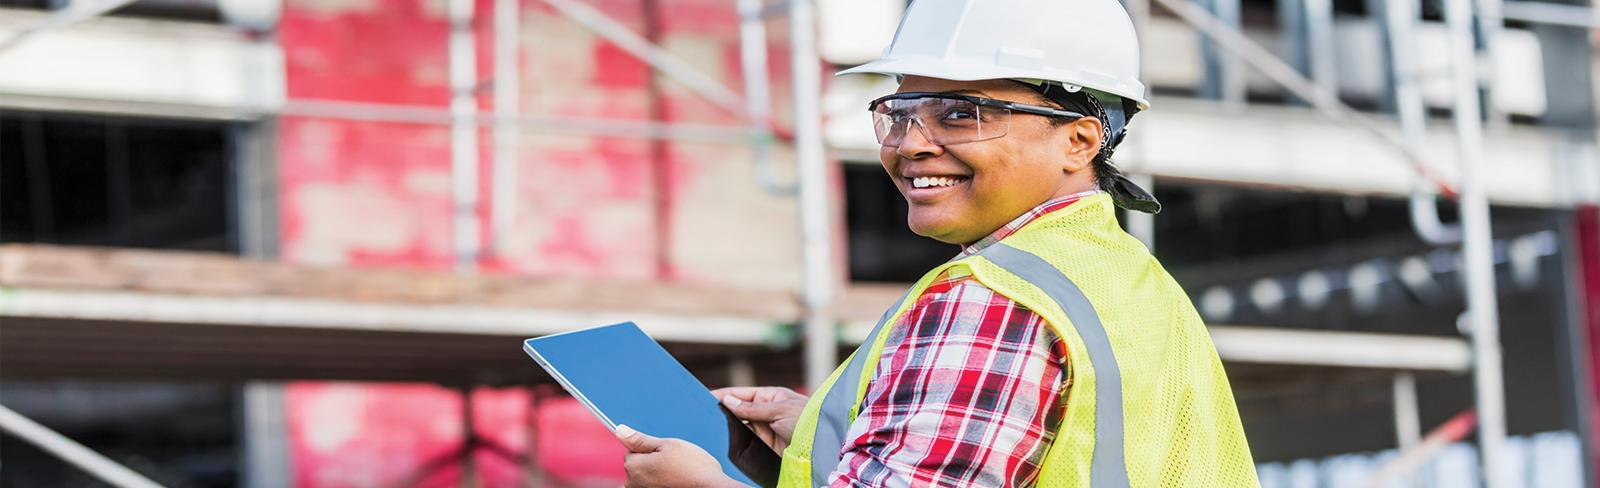 BLOG | Stepping Up Women's STEM Careers in Infrastructure Sectors